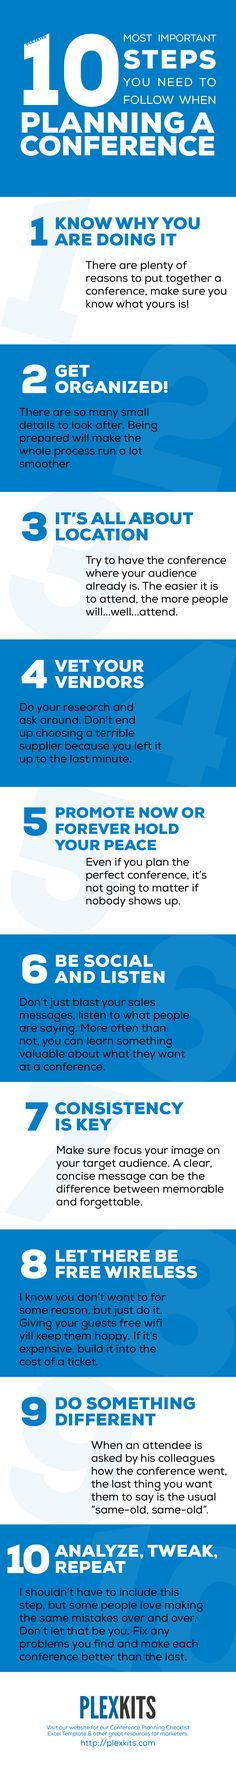 10 Most Important Steps You Need to Follow When Planning a Conference Infographic   PLEXKITS http://plexkits.com/10-steps-planning-a-conference/